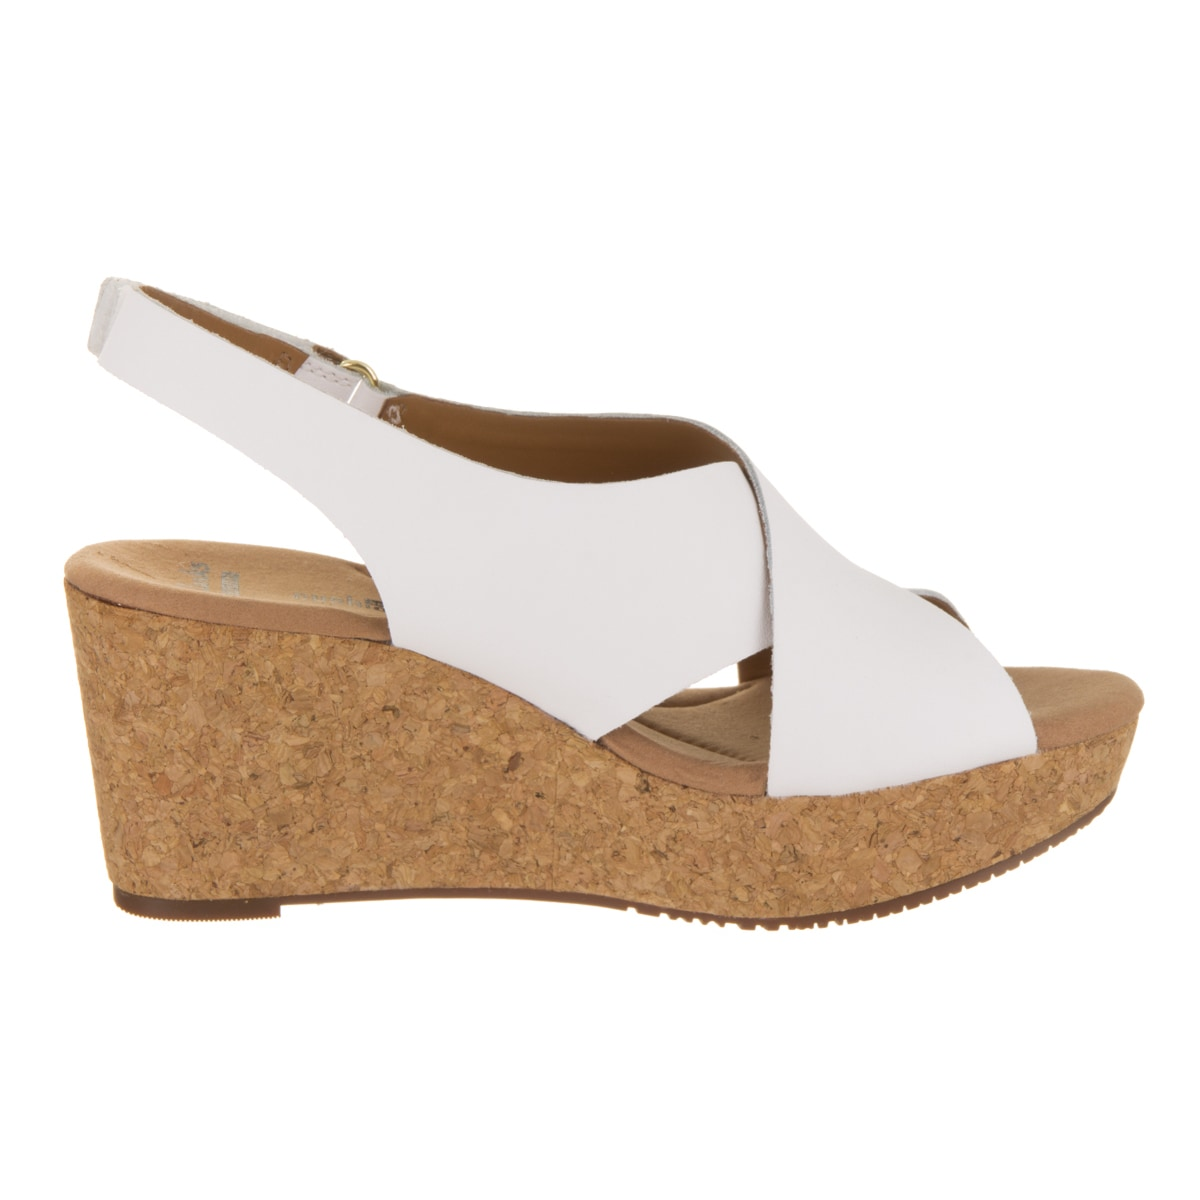 d0f96dcc3fb Shop Women s Clarks Annadel Eirwyn Slingback Wedge Sandal White Nubuck -  Ships To Canada - Overstock.ca - 14381350